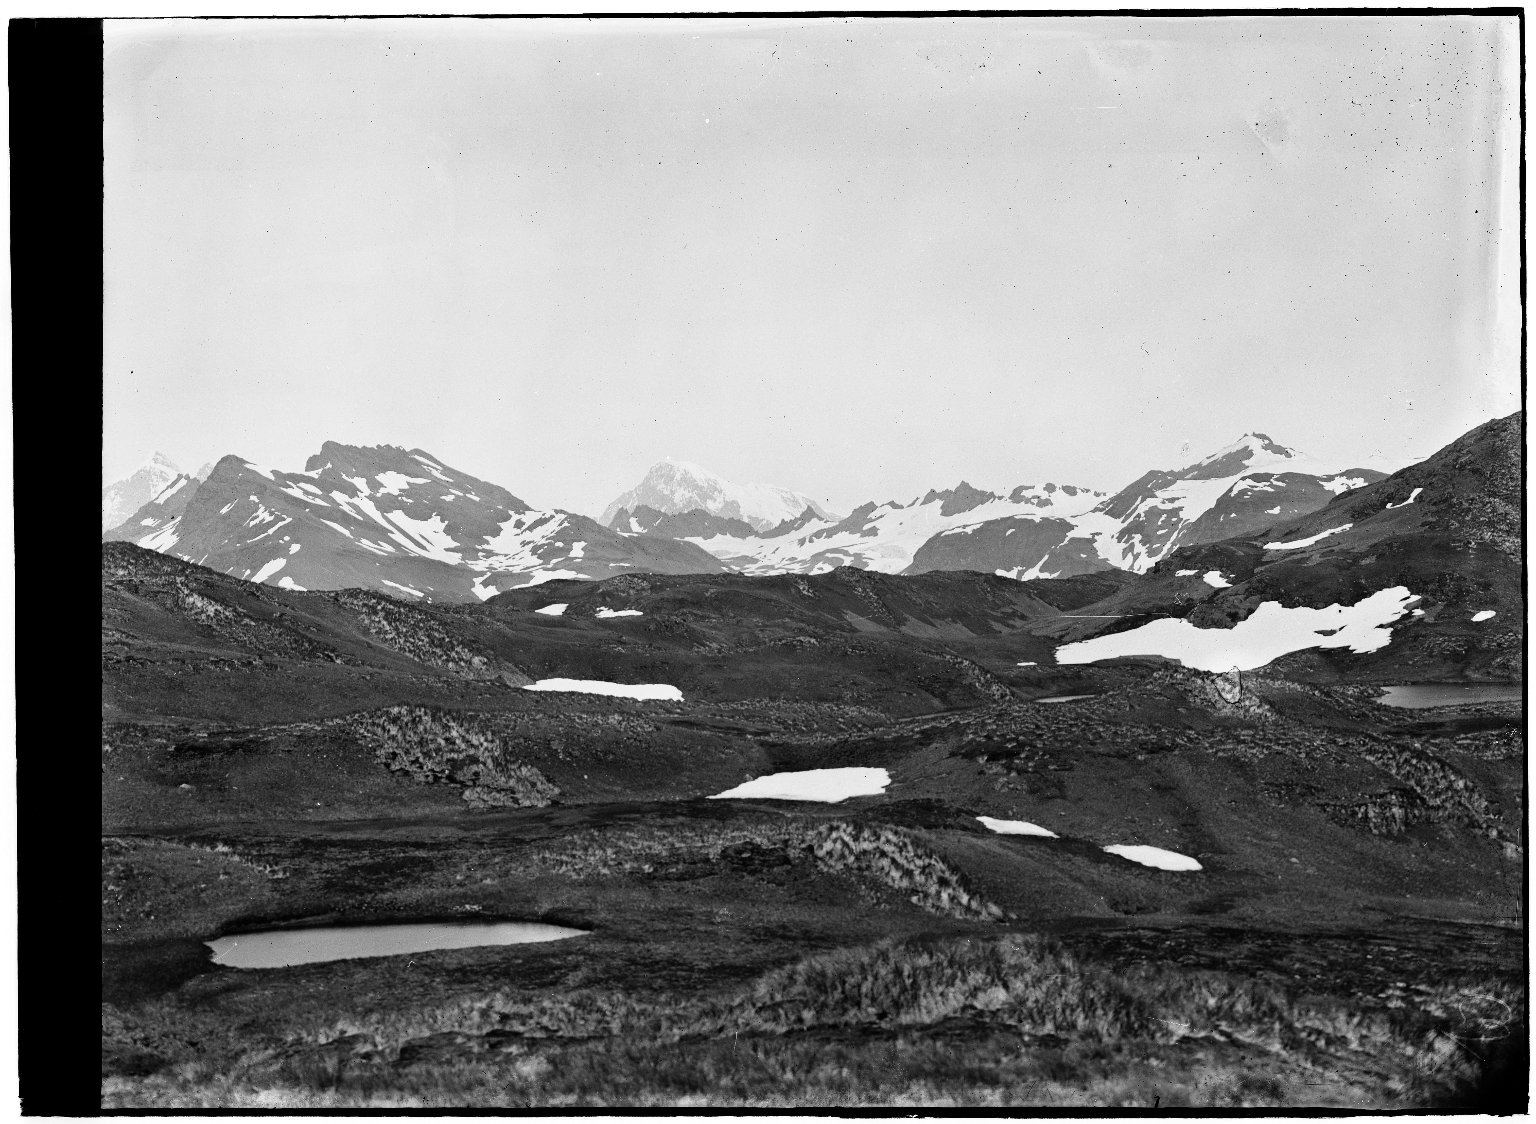 Prospecting Cruise to South Georgia and Antartica, 1913-14, P.014